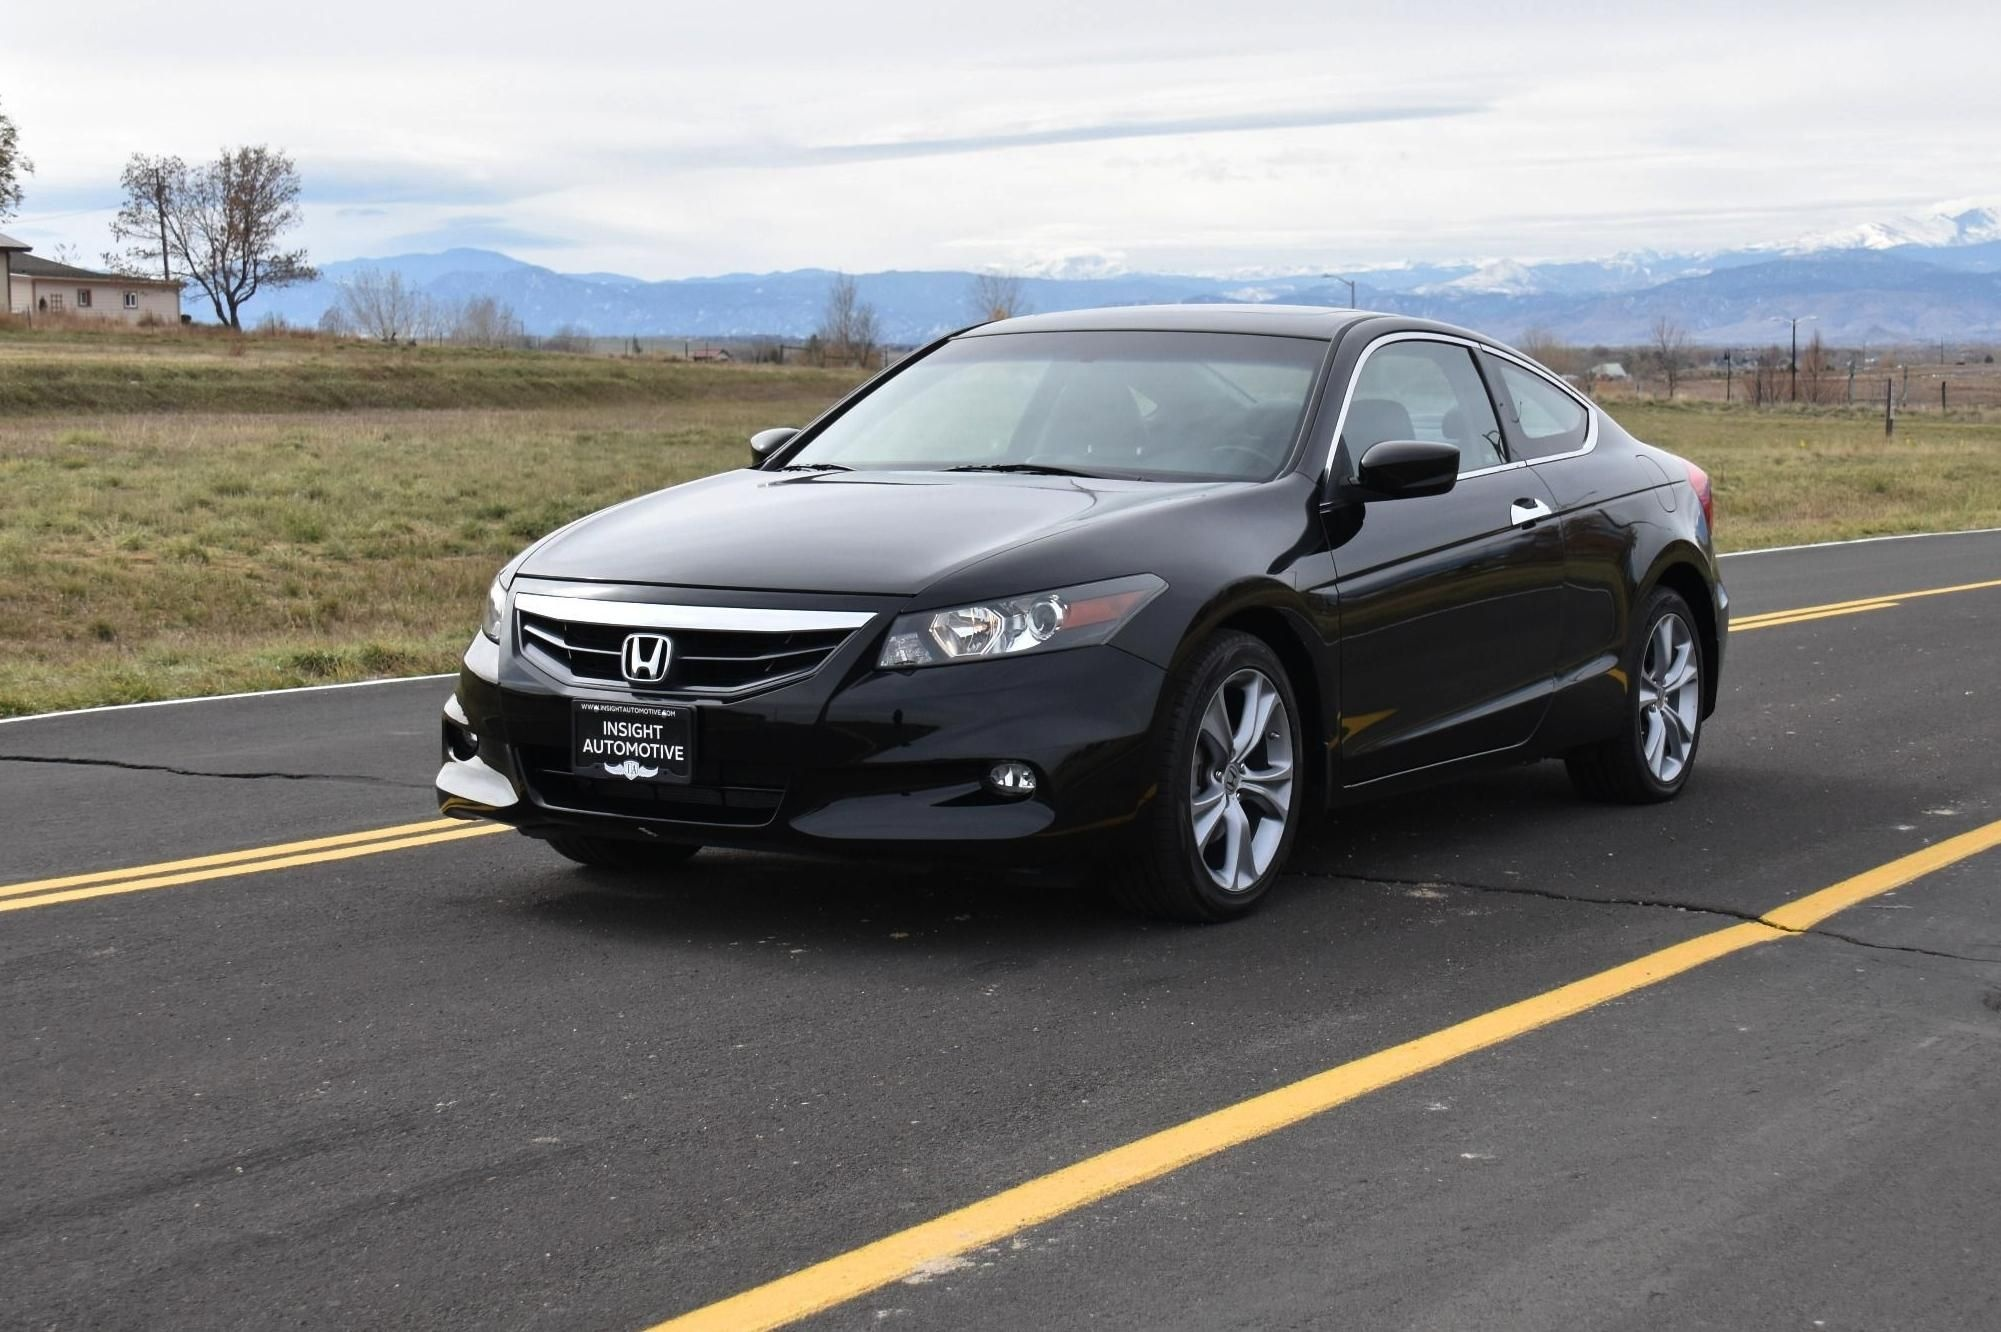 Honda Accord Modified Luxury 2012 Honda Accord Ex L V6 Insight Automotive-693 Of New Honda Accord Modified